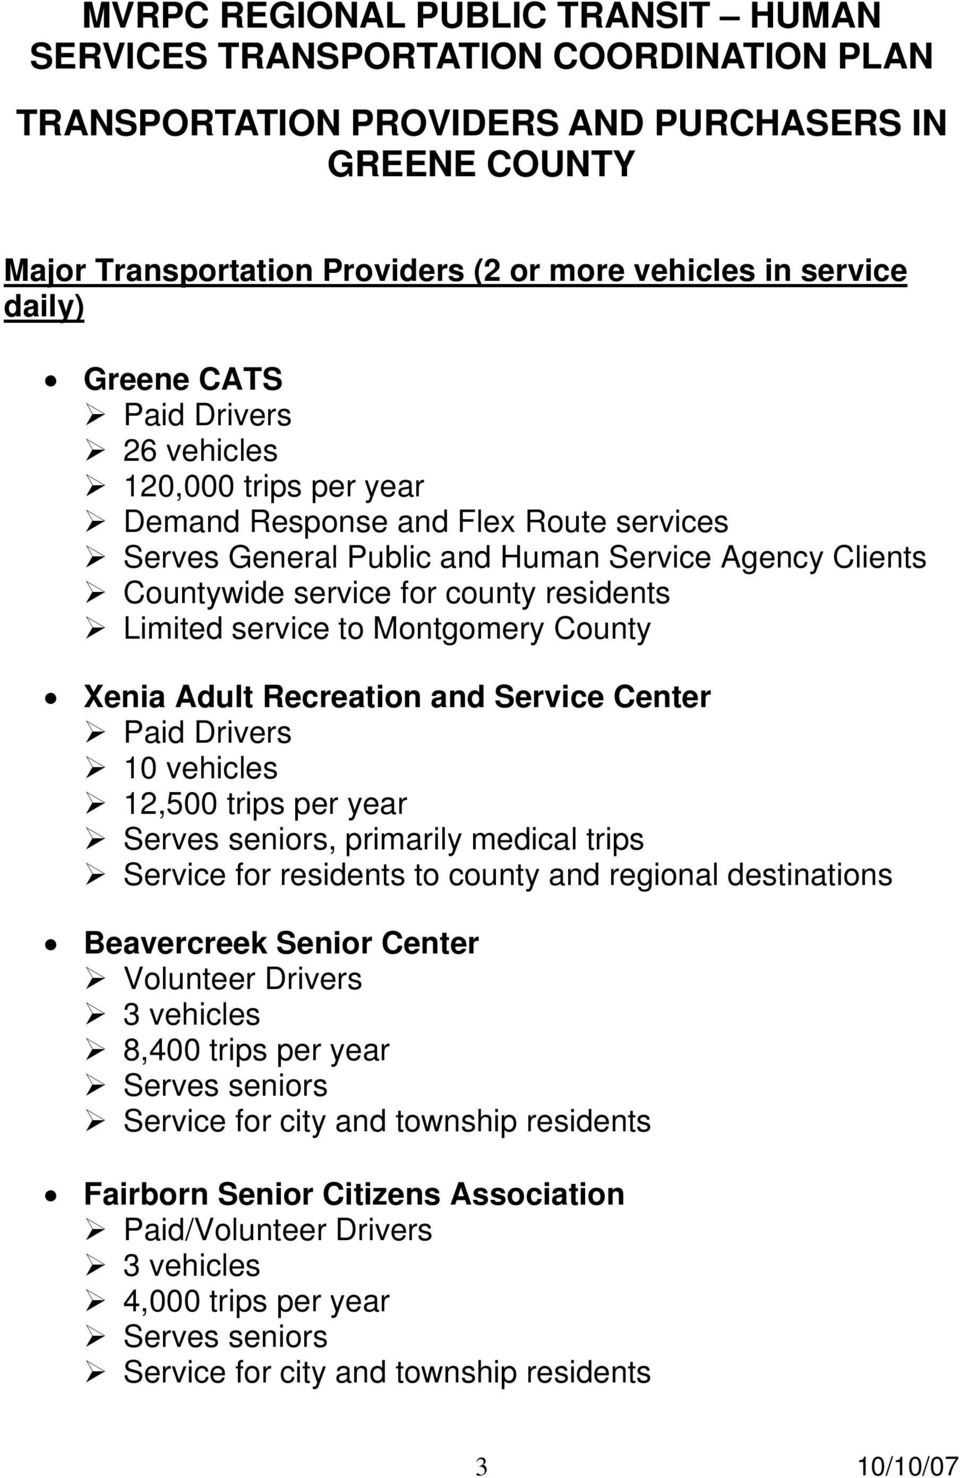 year Serves seniors, primarily medical trips Service for residents to county and regional destinations Beavercreek Senior Center Volunteer Drivers 3 vehicles 8,400 trips per year Serves